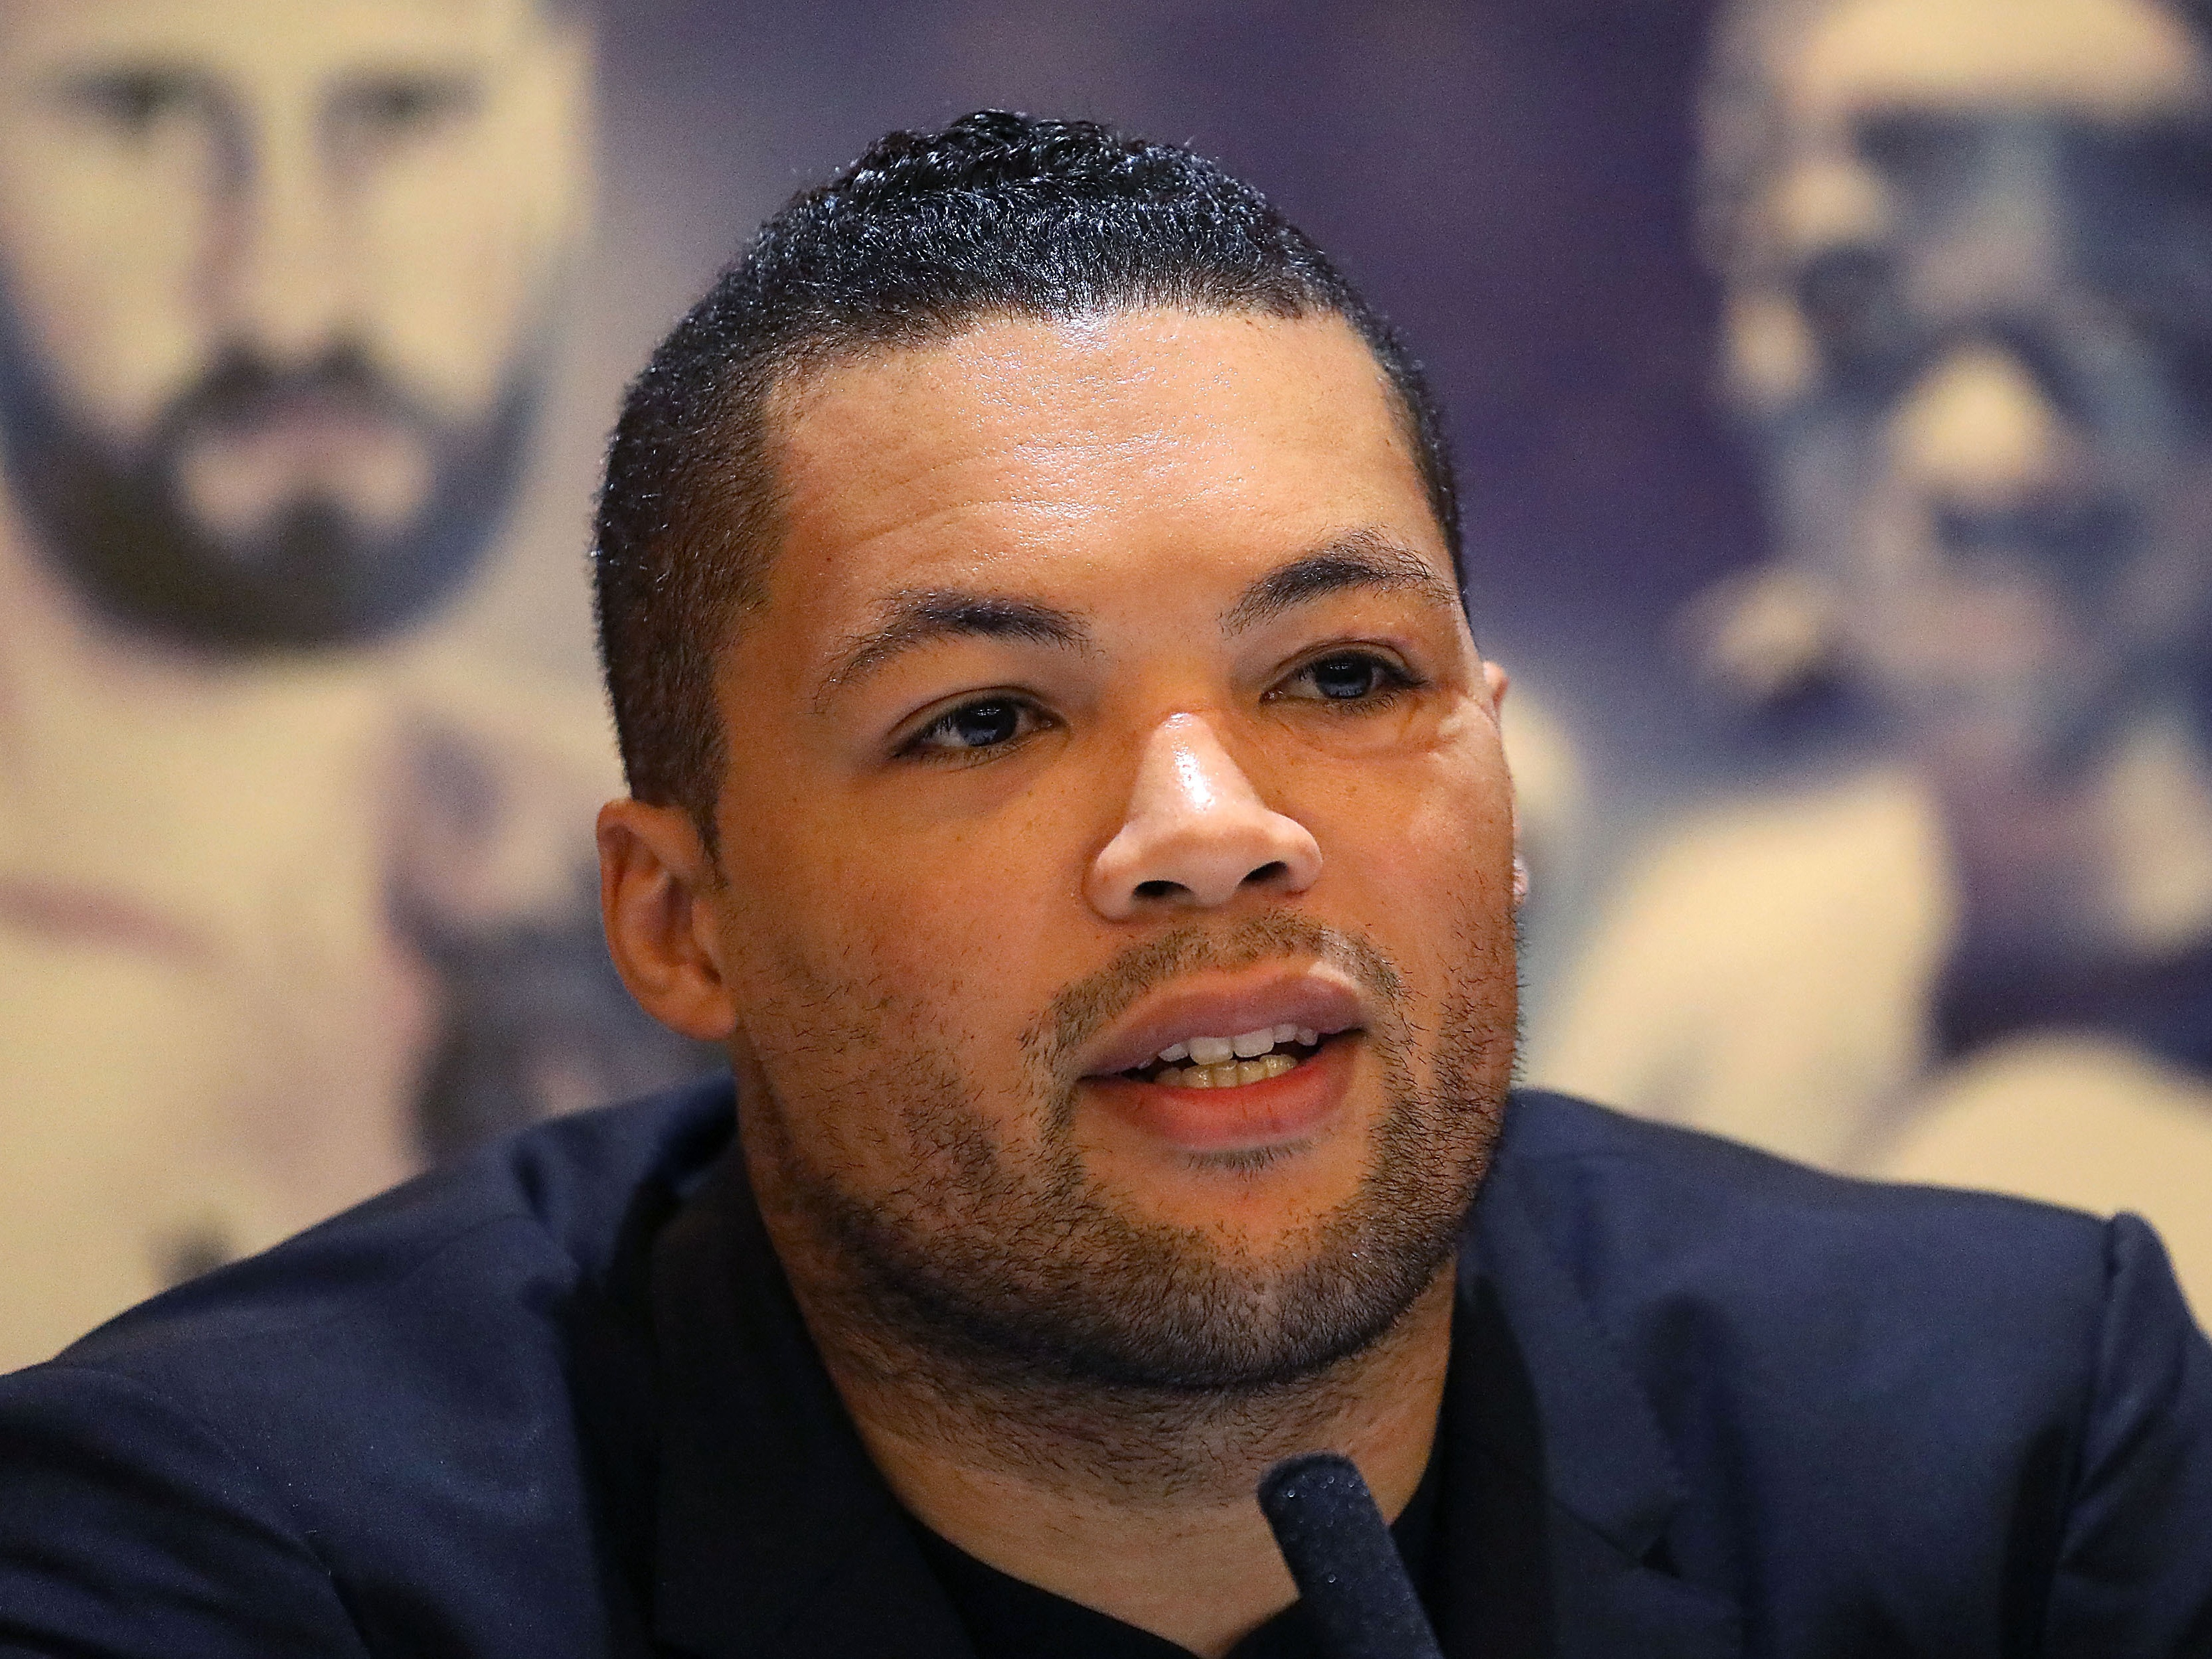 Joe Joyce speaking during the press conference at the Park Plaza Riverbank